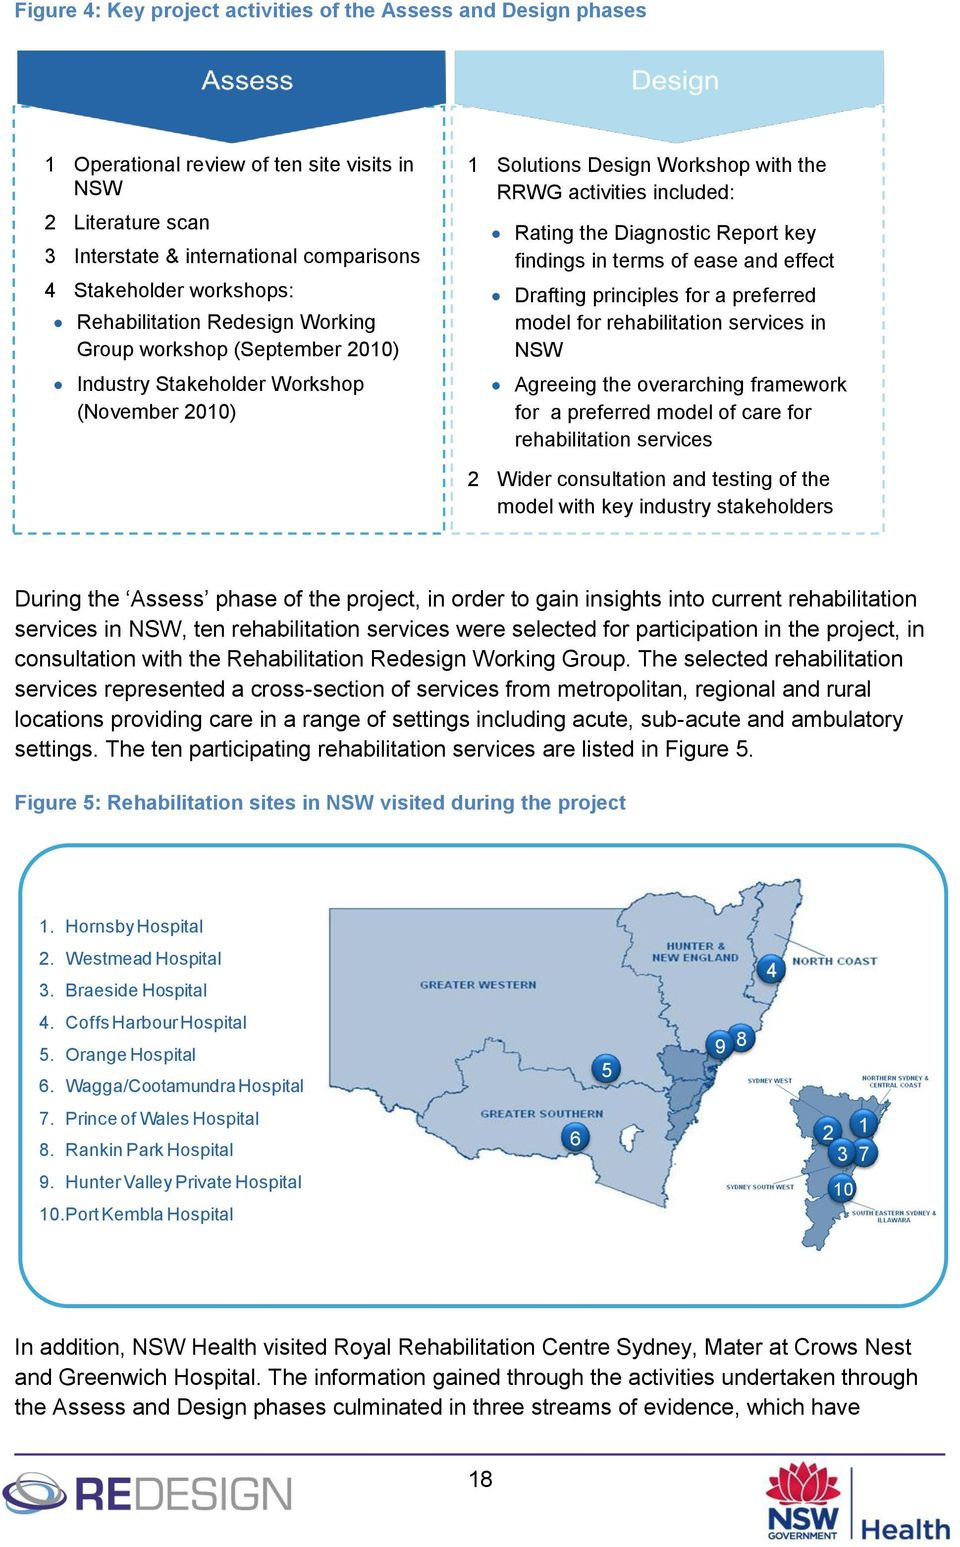 Report key findings in terms of ease and effect Drafting principles for a preferred model for rehabilitation services in NSW Agreeing the overarching framework for a preferred model of care for